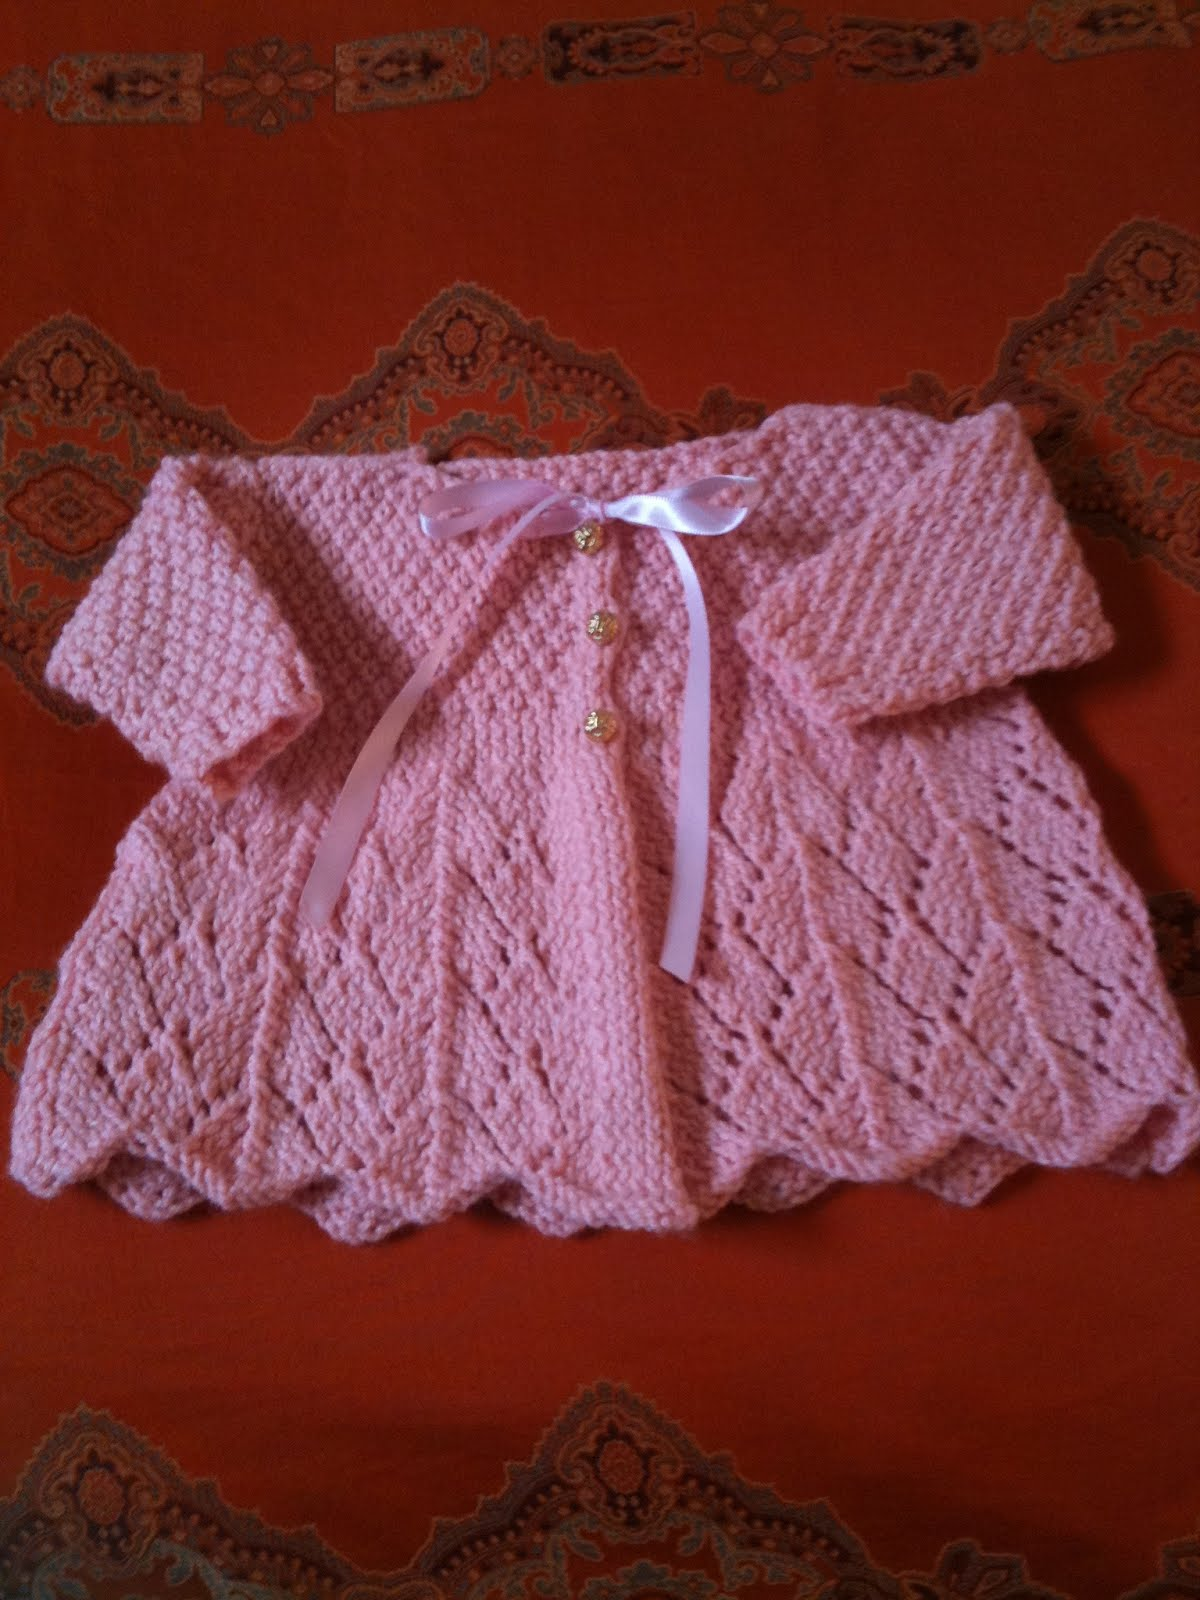 Knitting Patterns Baby Sweaters : La Dolce Duchessa: Lace Baby Sweater